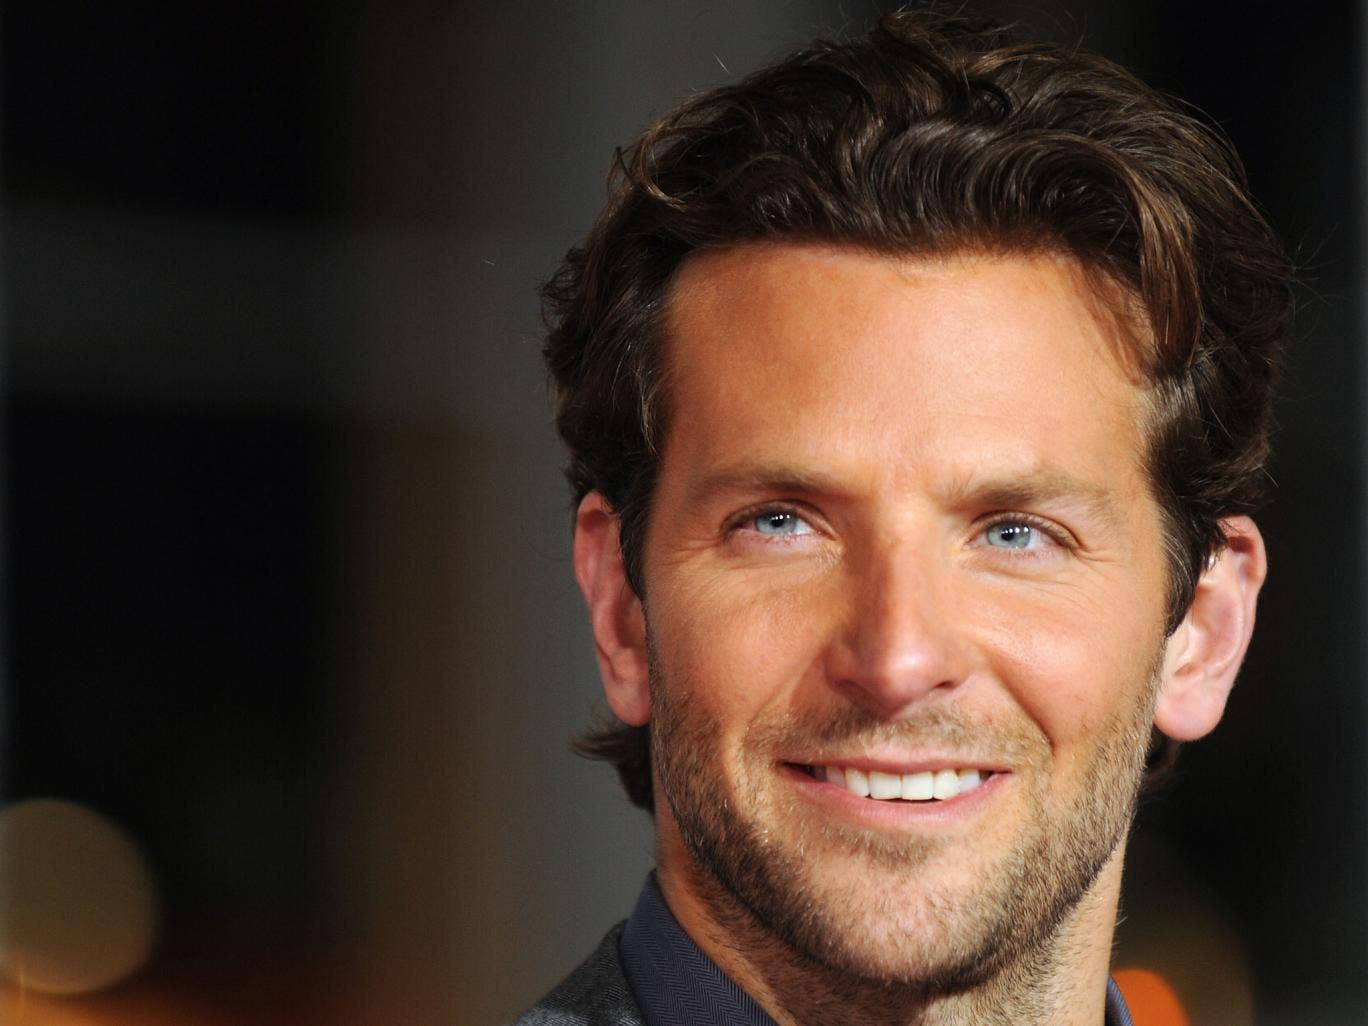 Bradley cooper jennifer lawrence pay gap essay